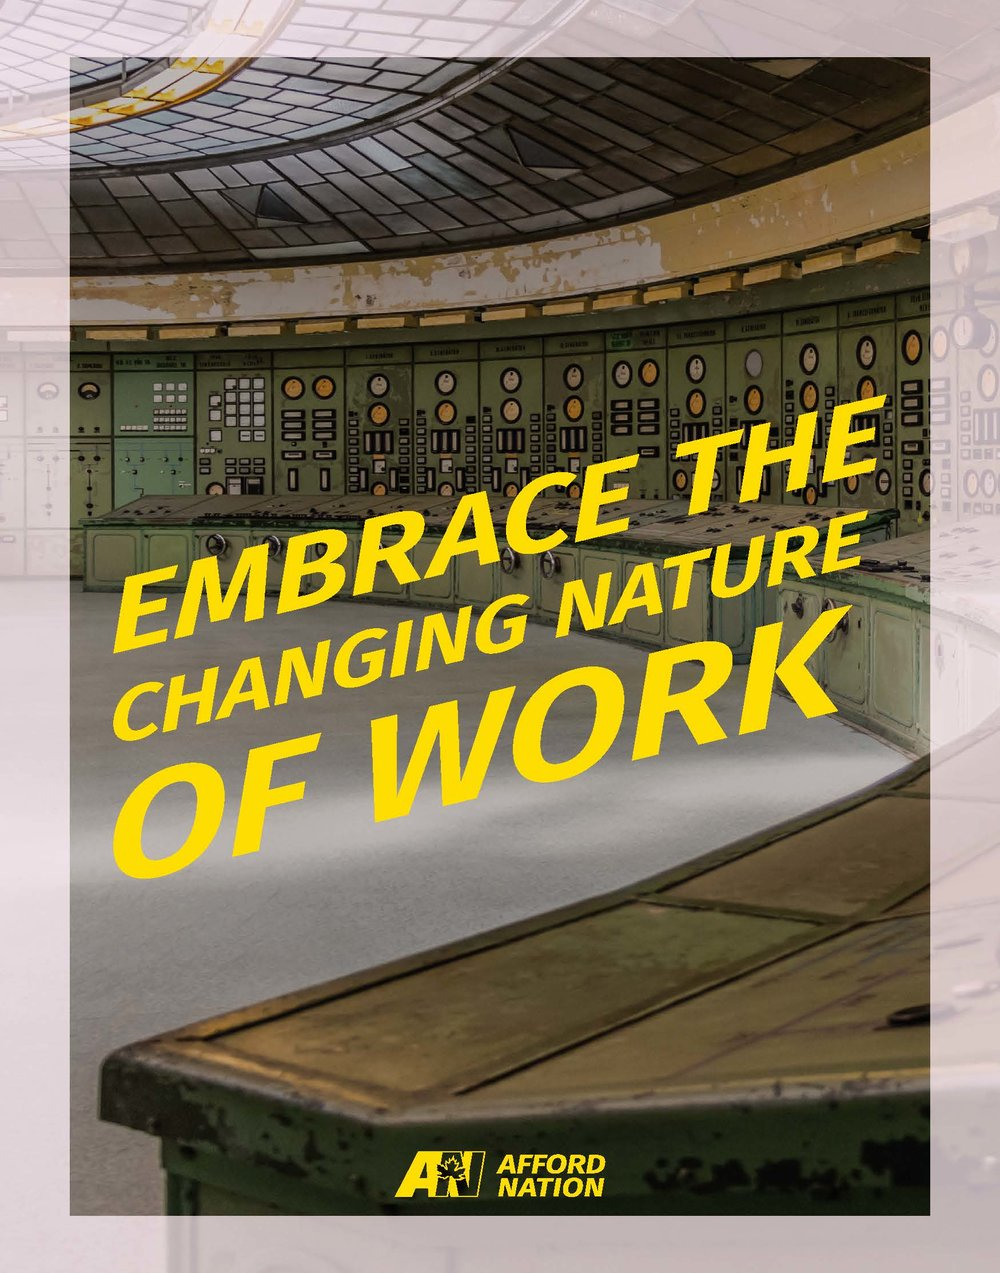 Embrace the changing nature of work